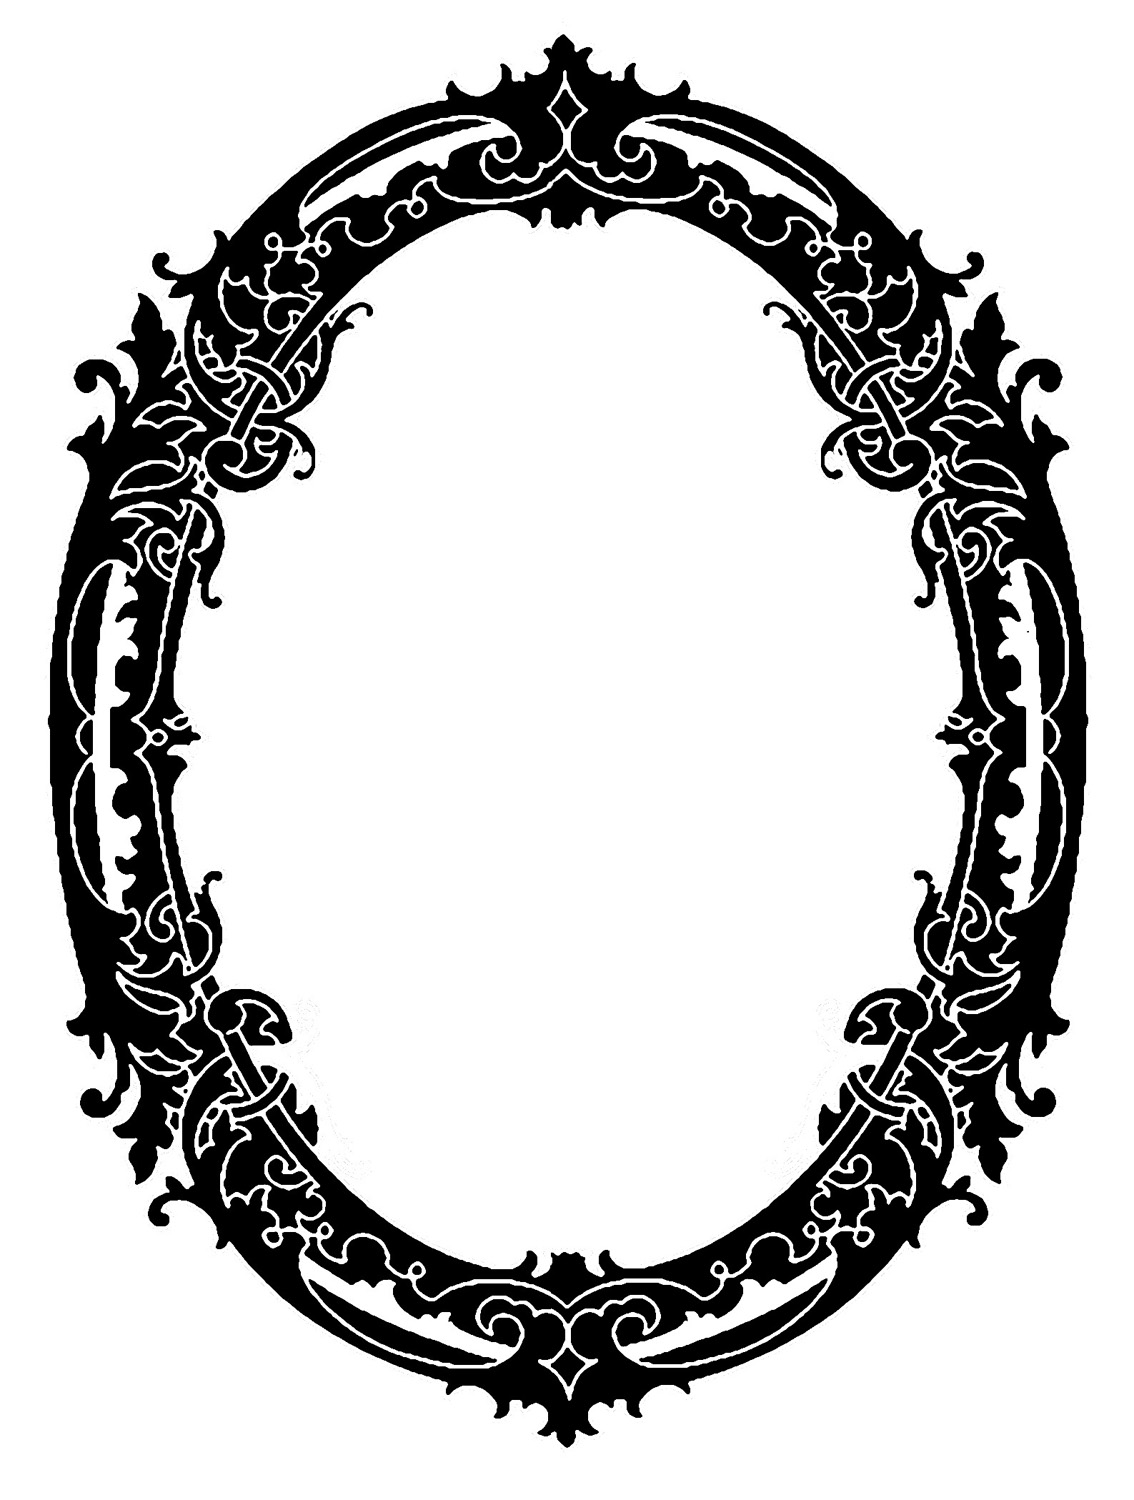 Clip Art   Stunning Silhouette Frames   Christmas   The Graphics Fairy